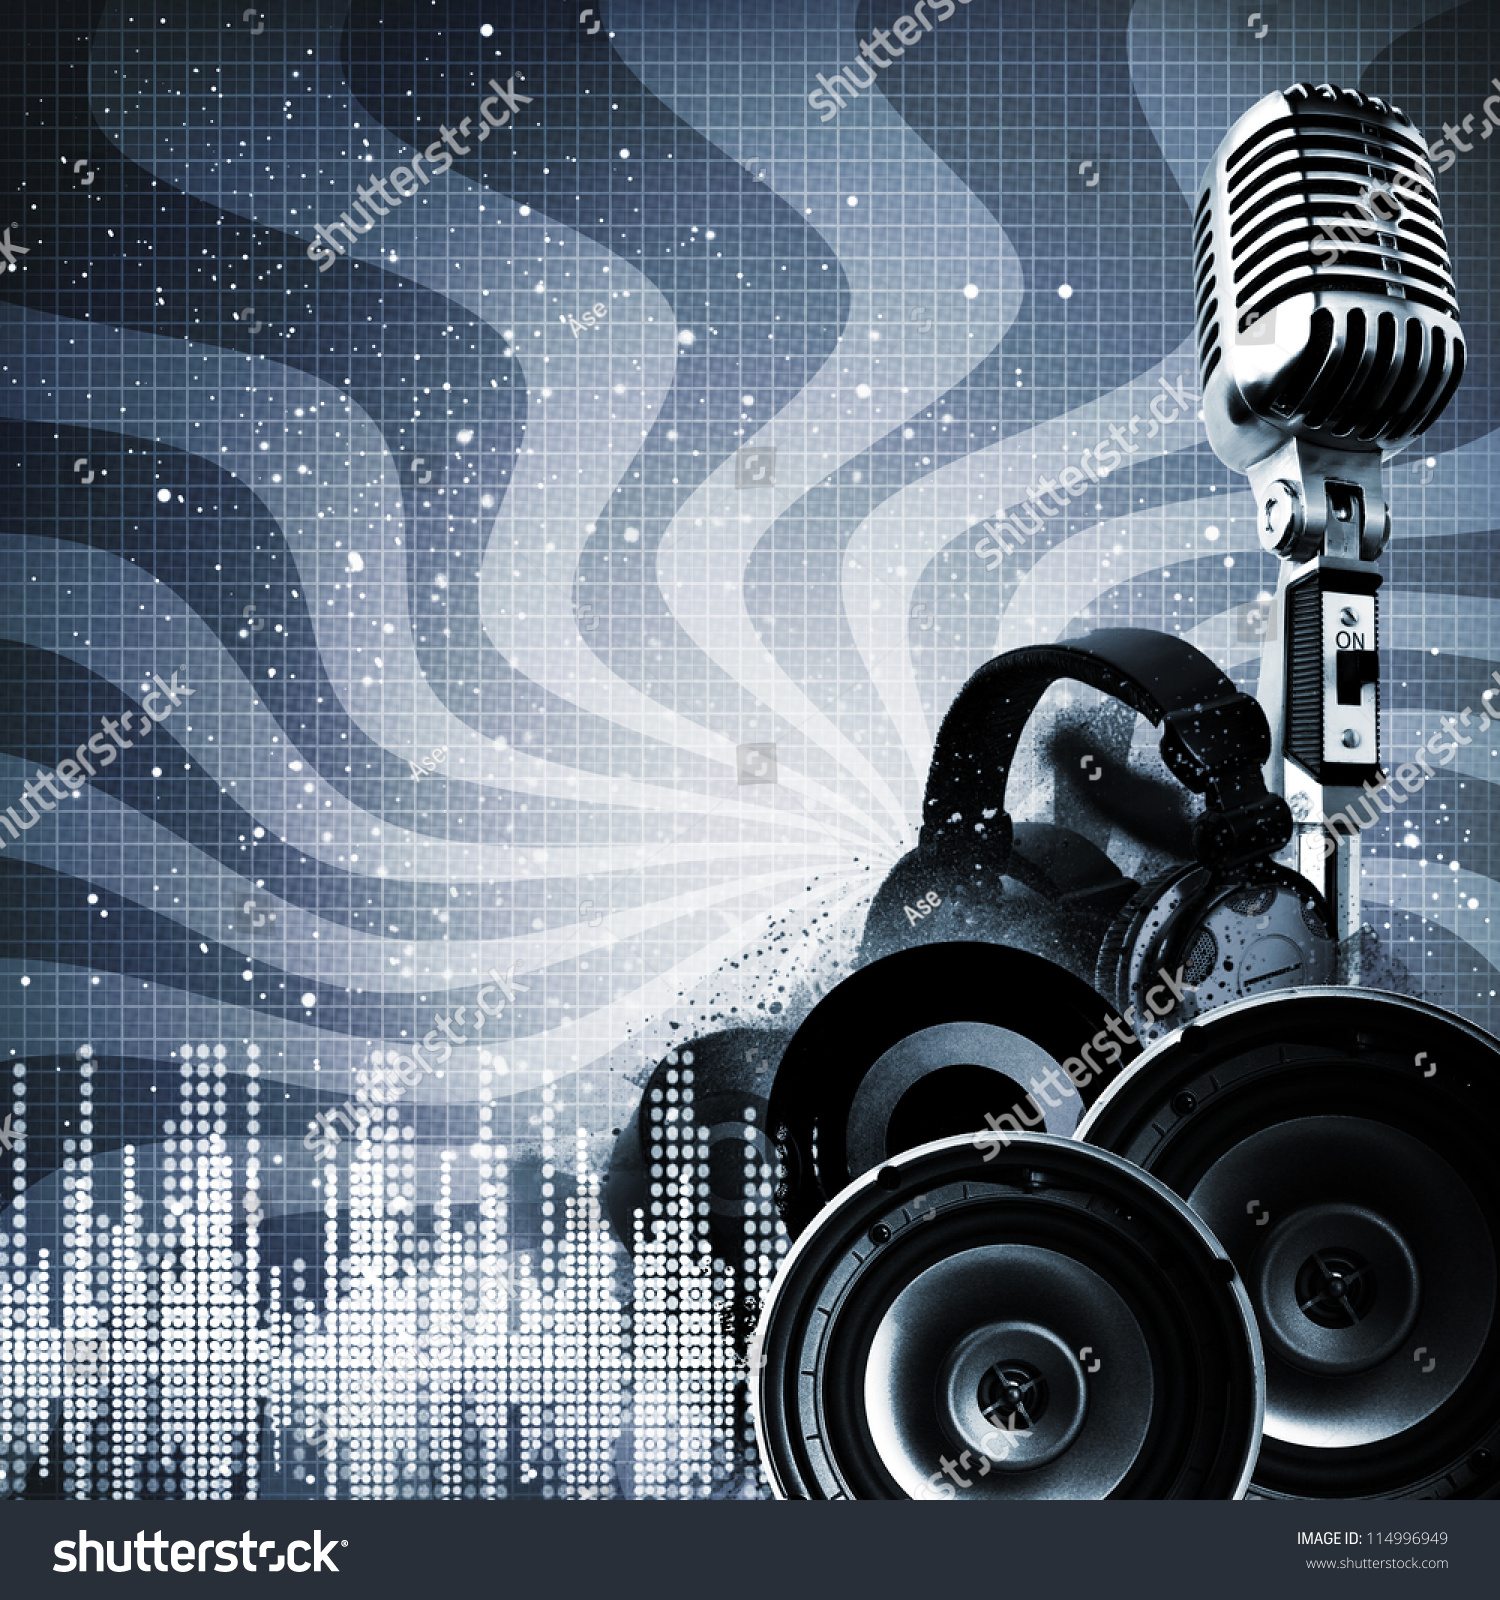 http://image.shutterstock.com/z/stock-photo-abstract-dj-backgrounds-with-copy-space-for-your-design-114996949.jpg Dj